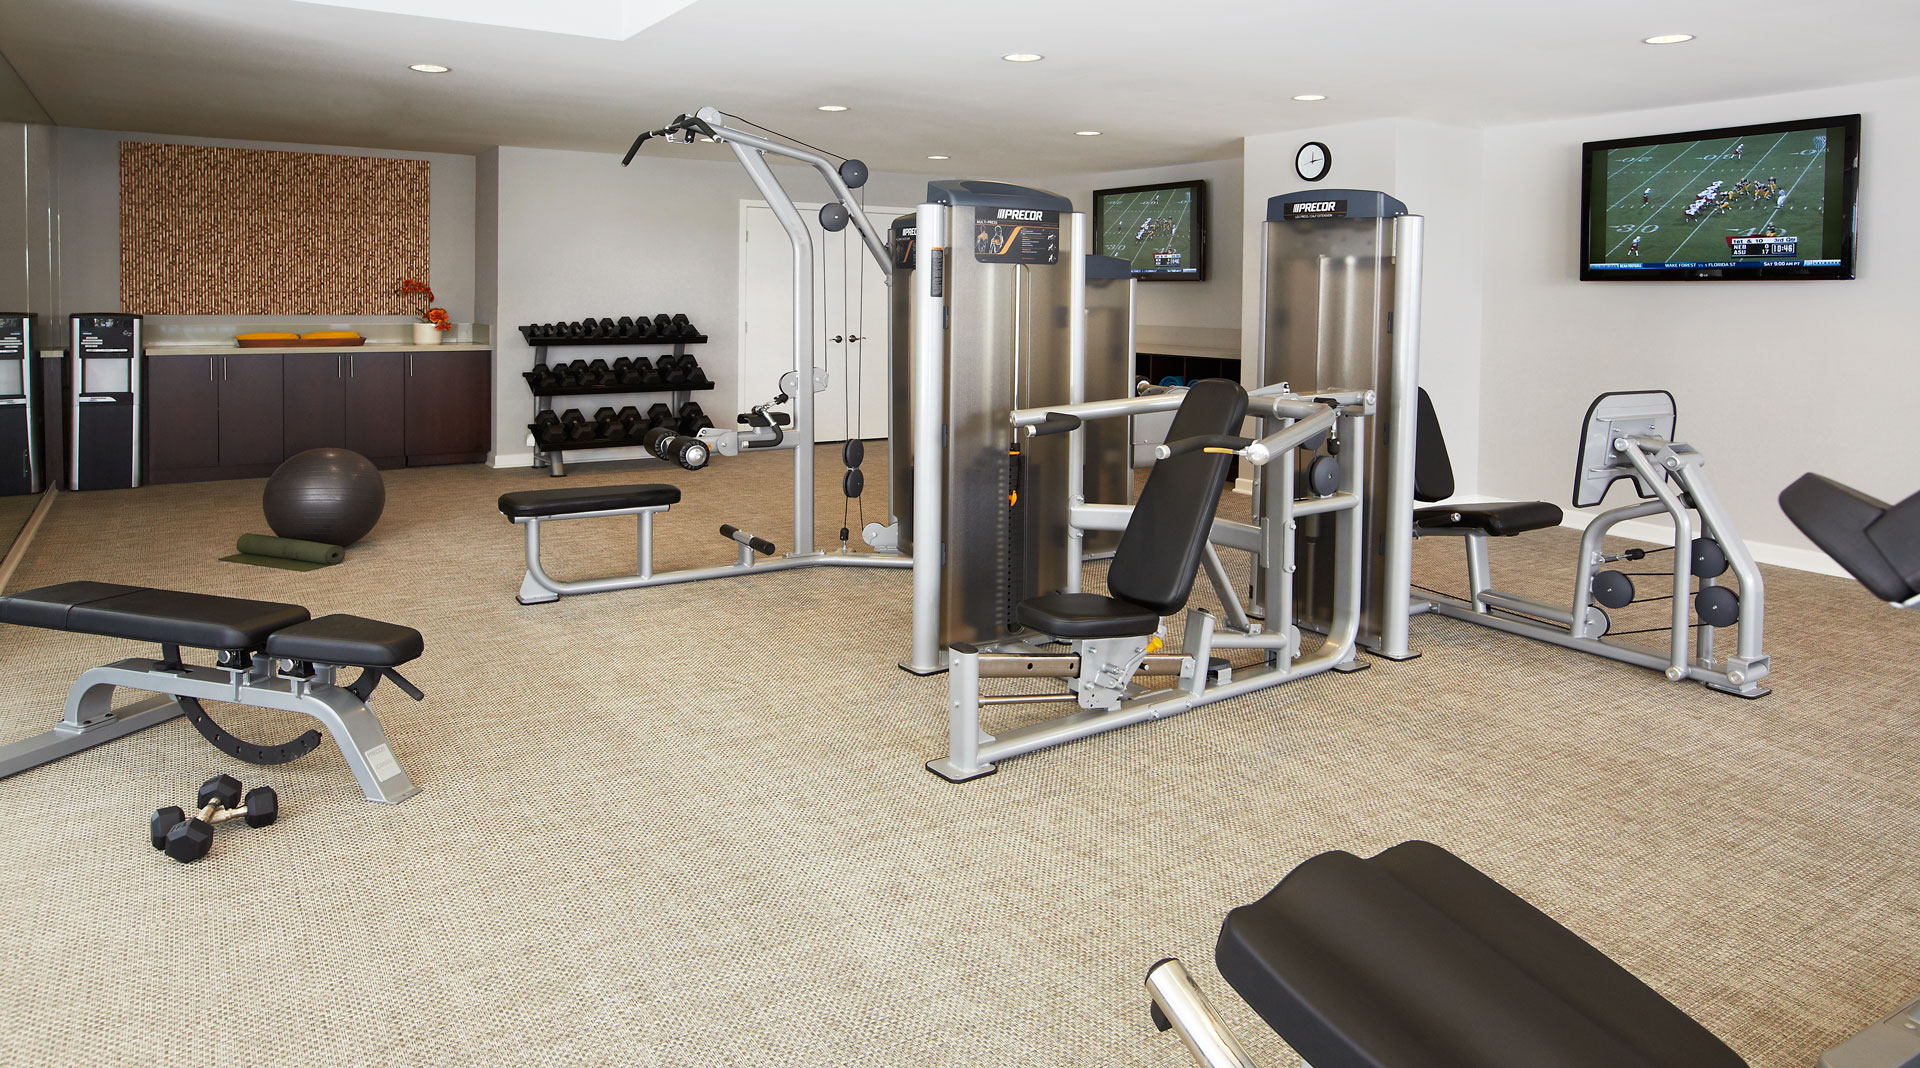 The Avenue in Hollywood fitness center